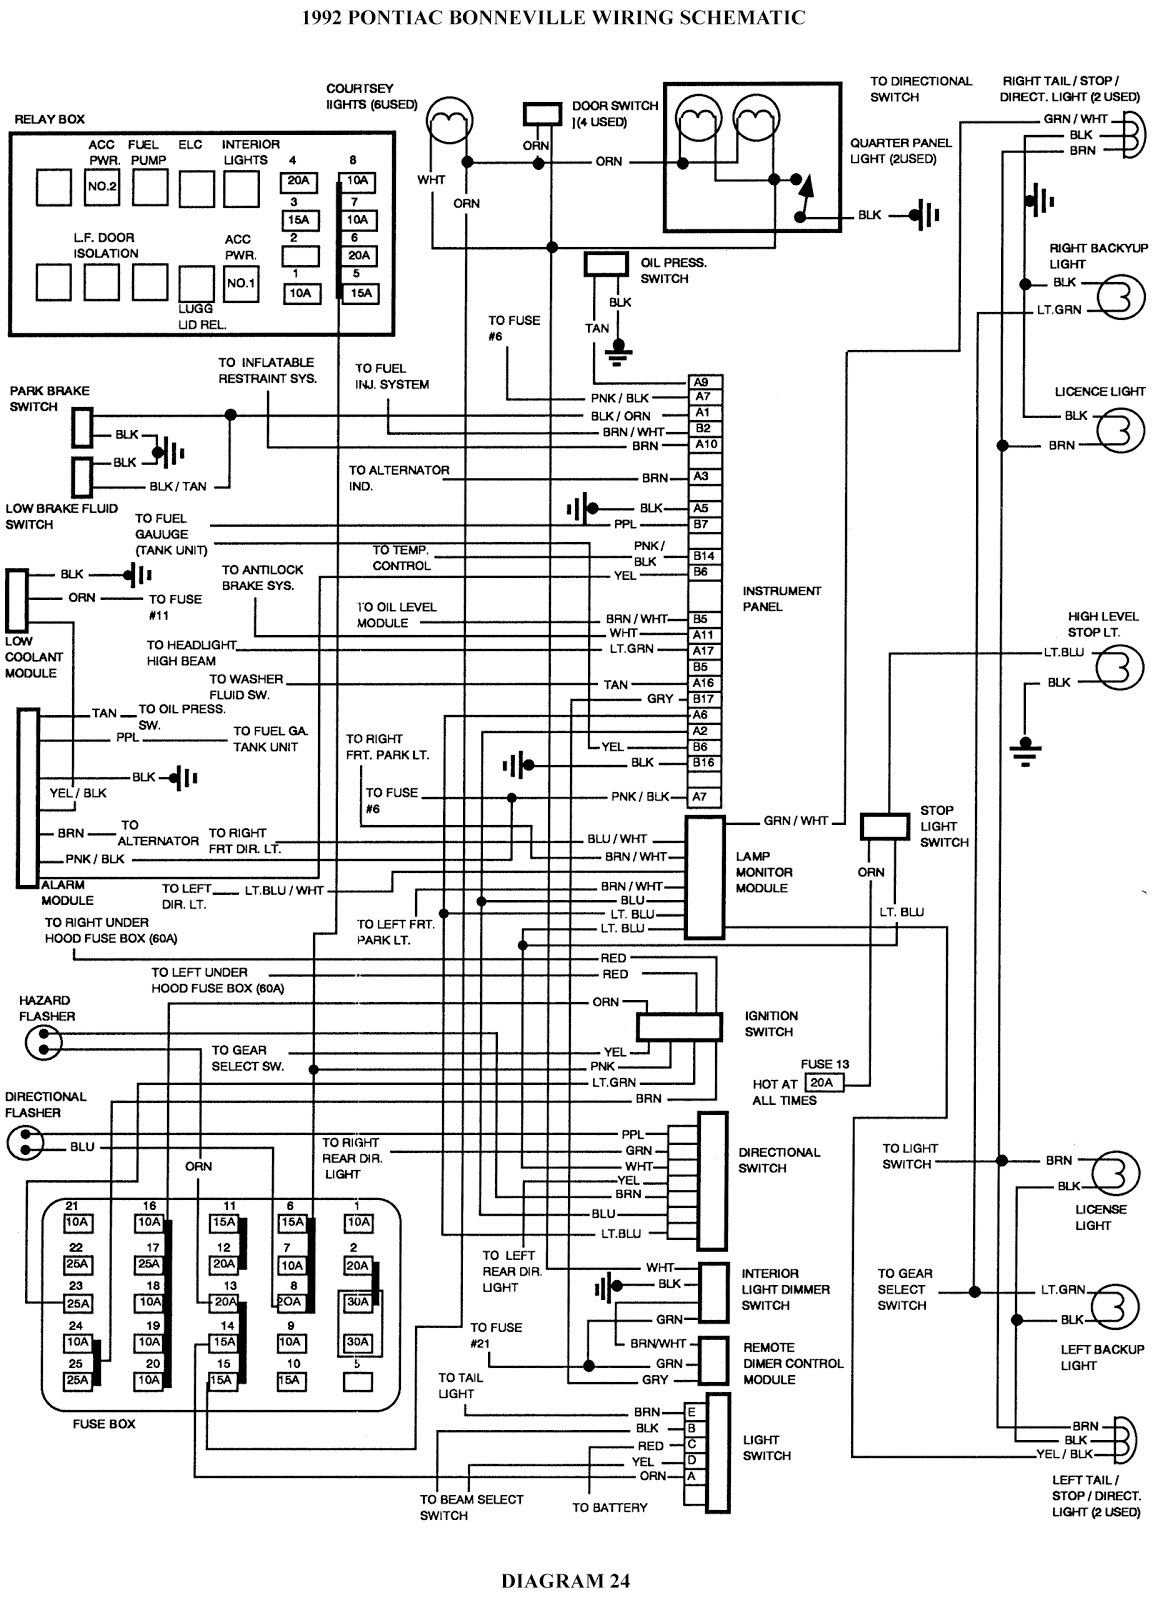 2003 chevy trailblazer stereo wiring diagram 2003 chevy hd stereo wiring harness